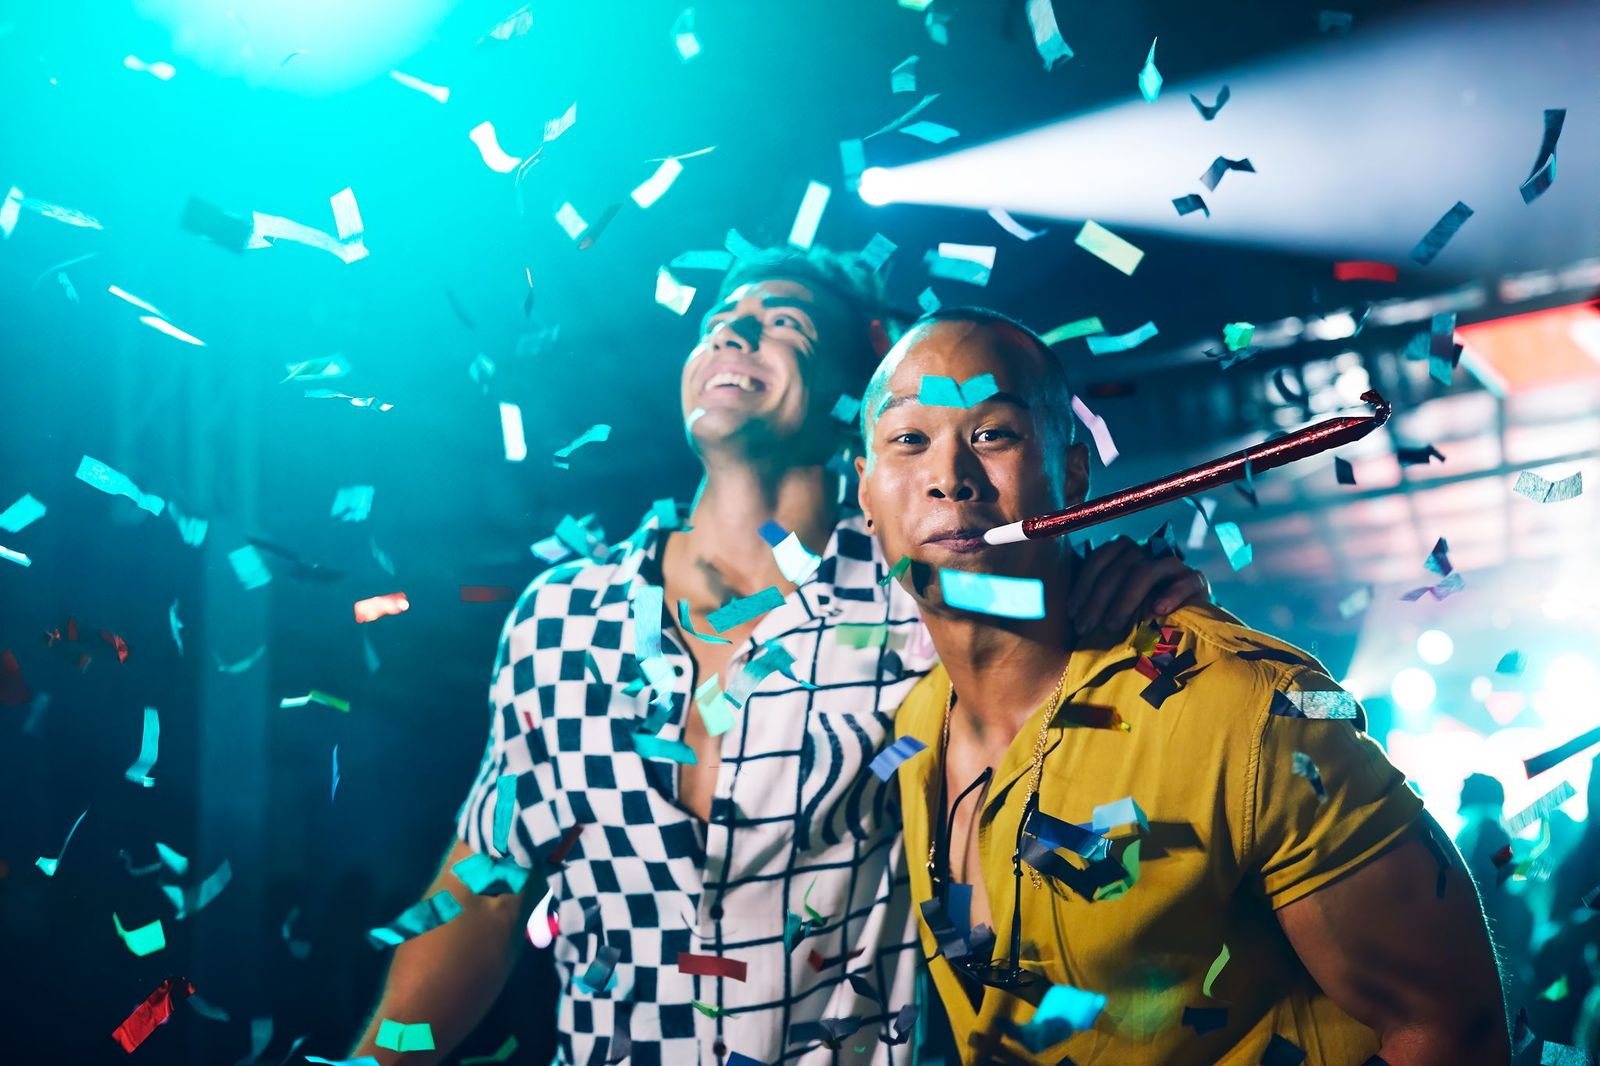 2 men at party with confetti and noise blowers